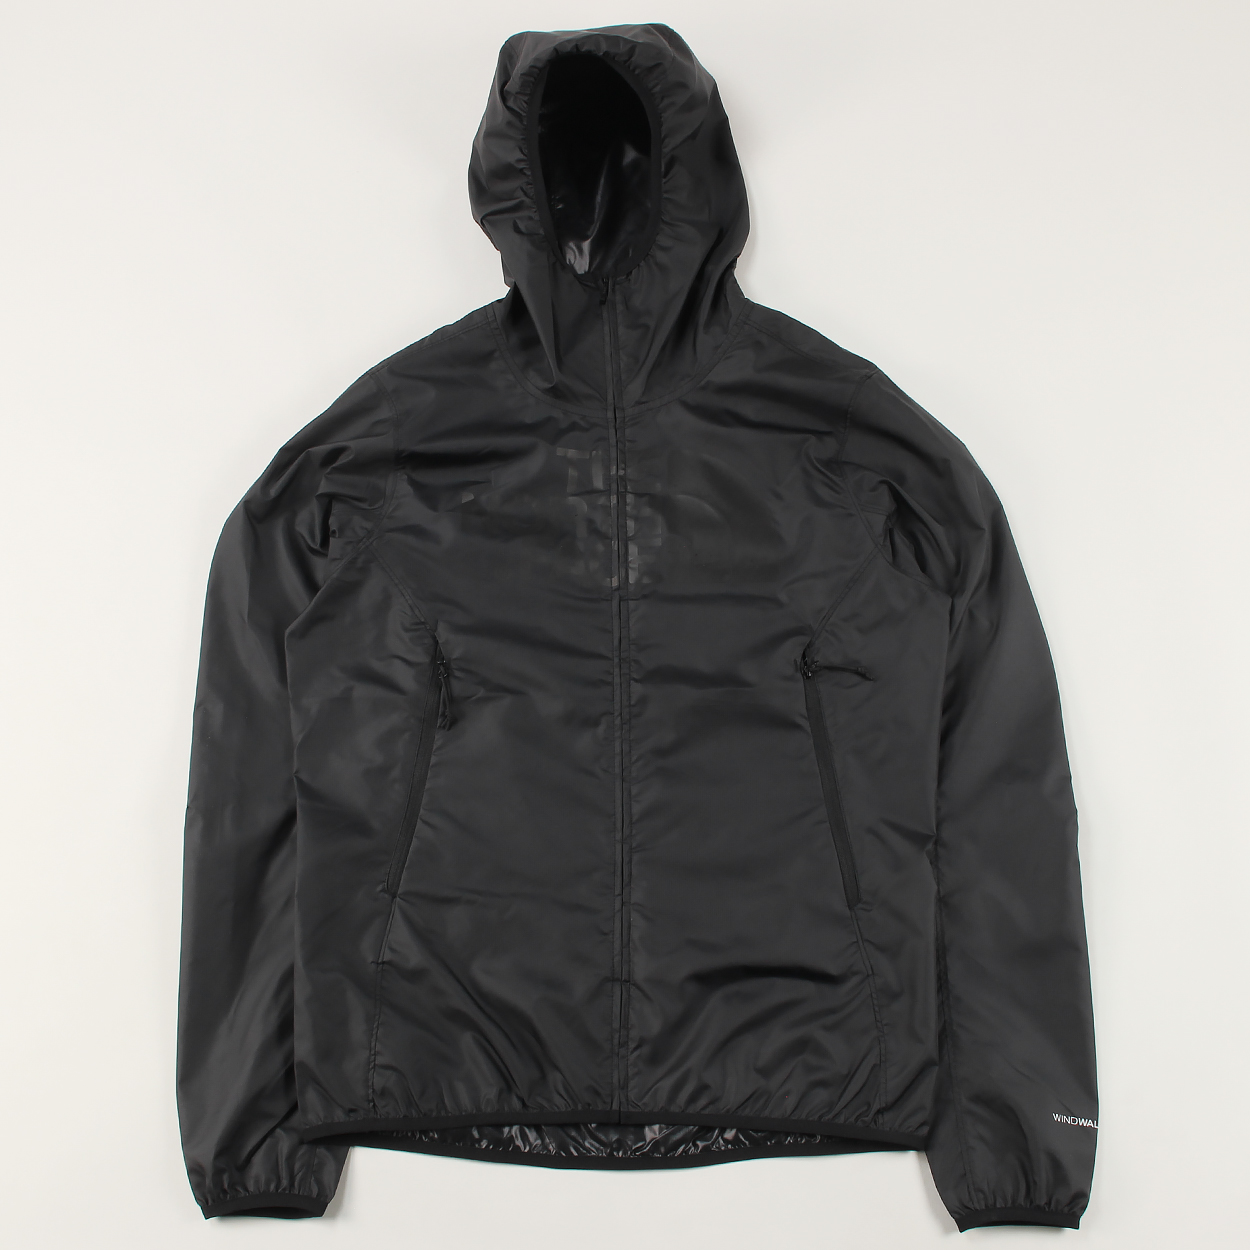 a09decf21 The North Face Mens Drew Peak Windwall Zip Up Jacket Black £43.00